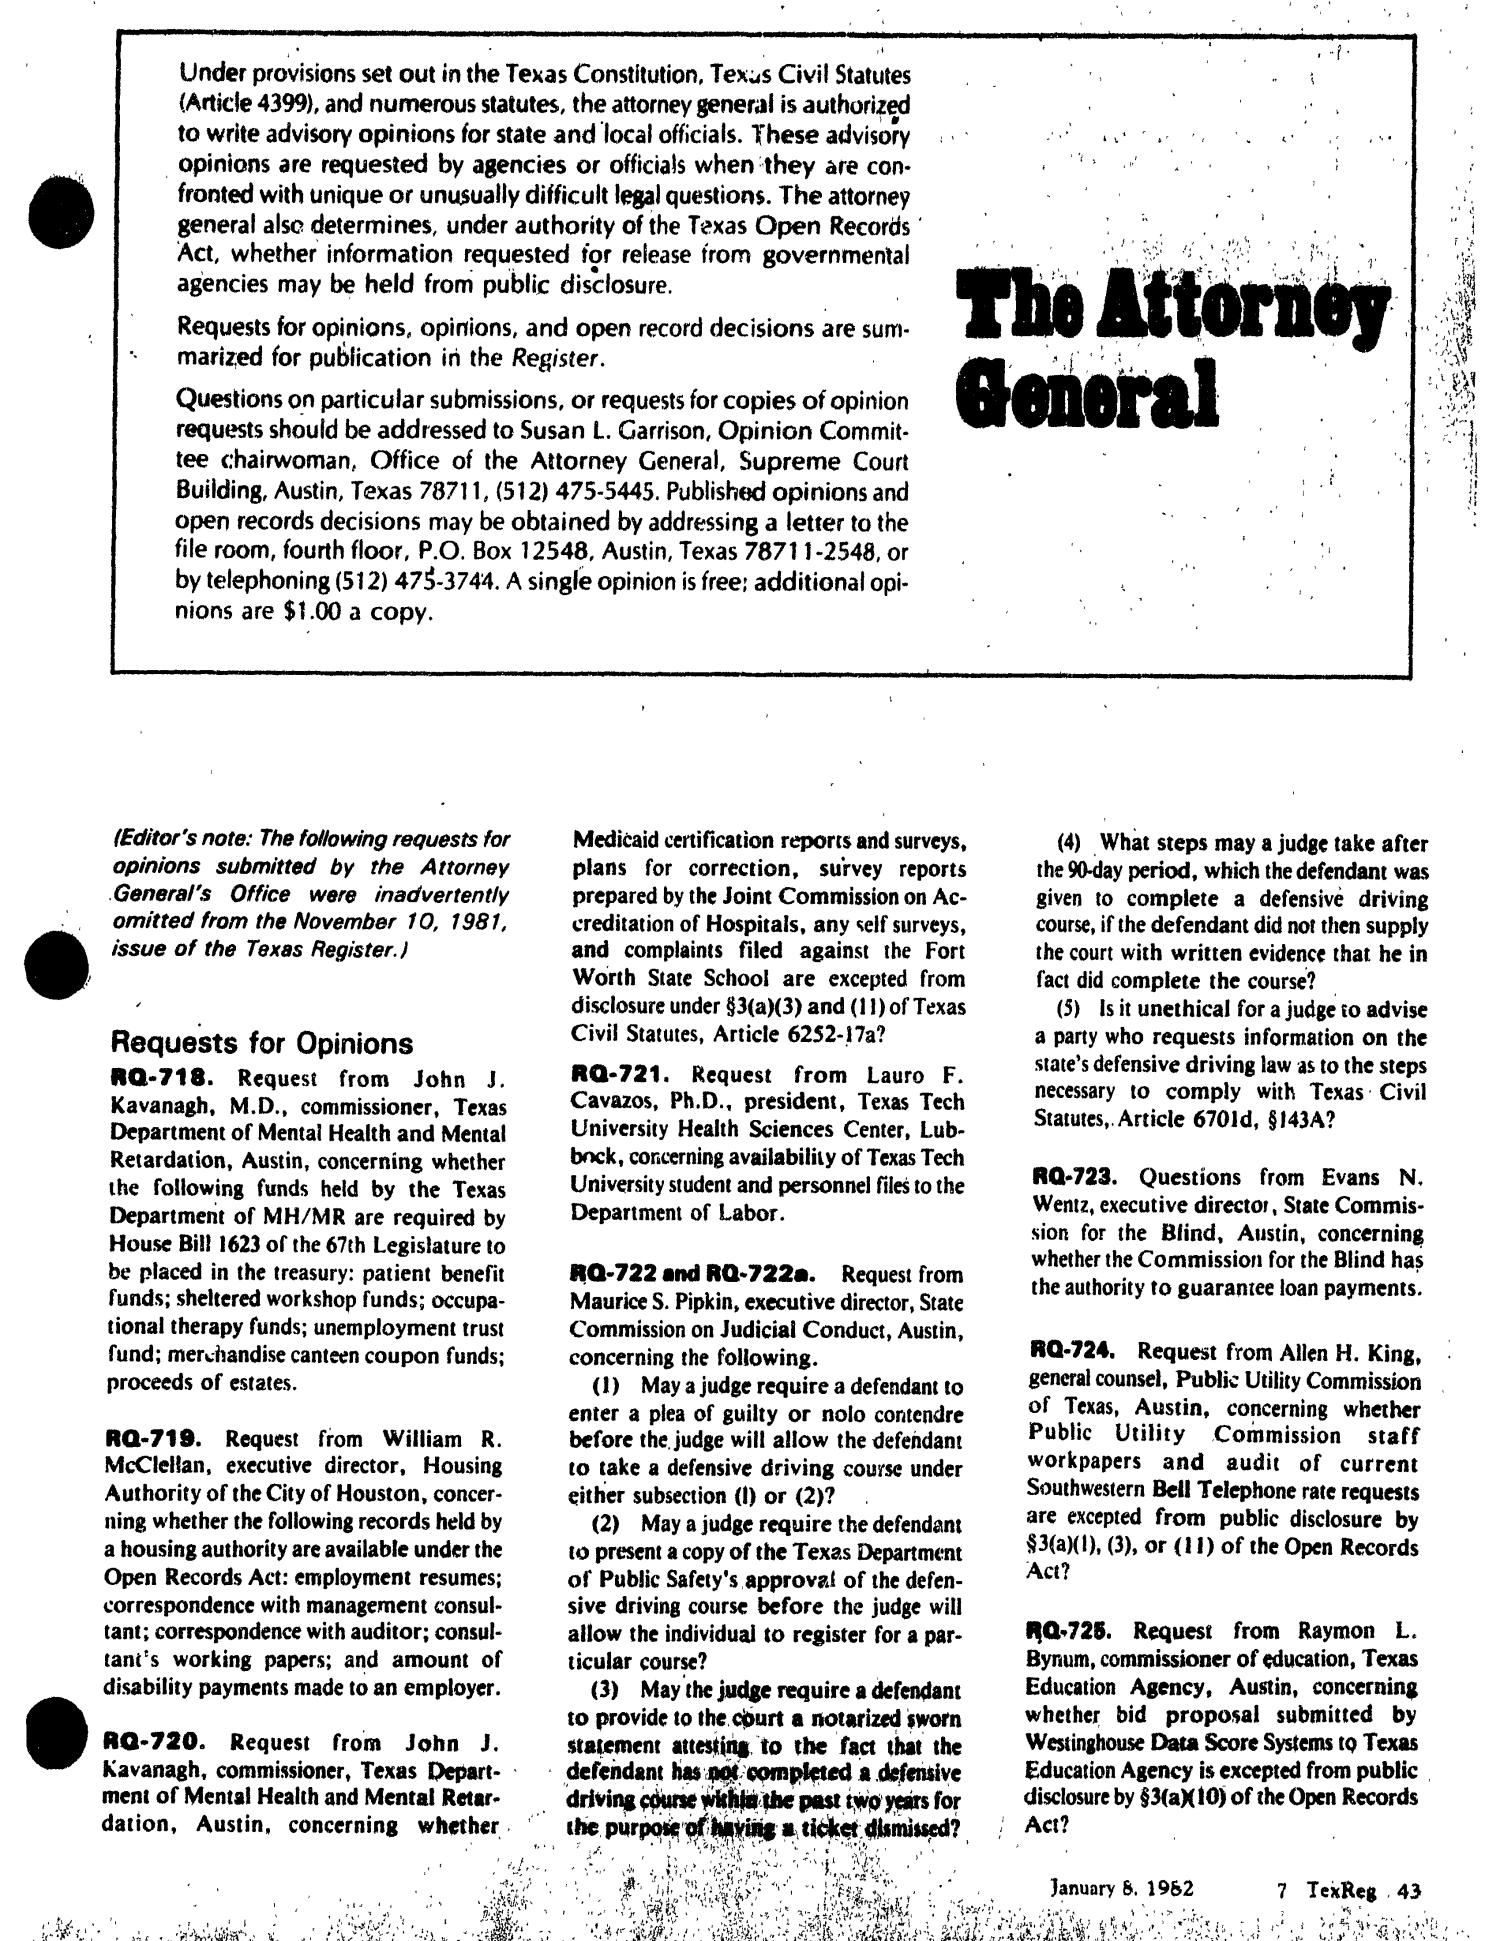 Texas register volume 7 number 2 pages 39 114 january 8 1982 texas register volume 7 number 2 pages 39 114 january 8 1982 page 43 the portal to texas history xflitez Image collections